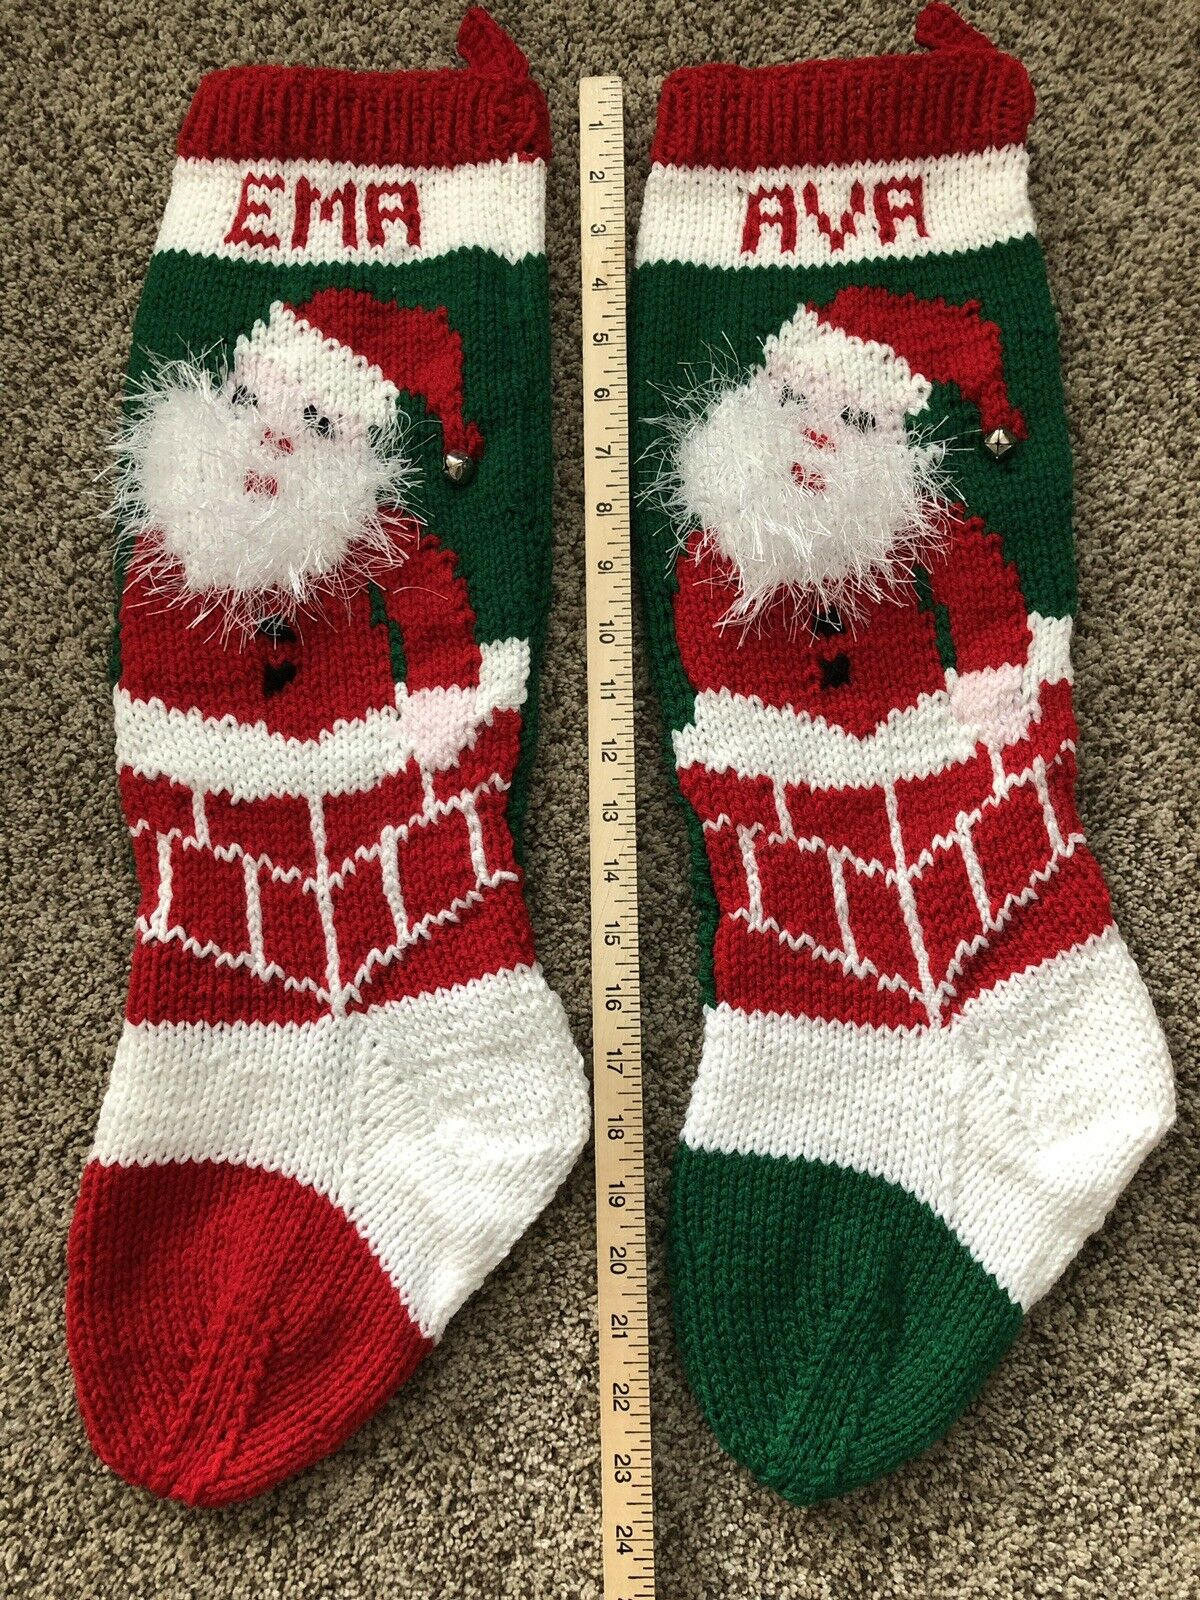 HAND KNIT PERSONALIZED Christmas Stocking Santa With Fuzzy Beard in ...